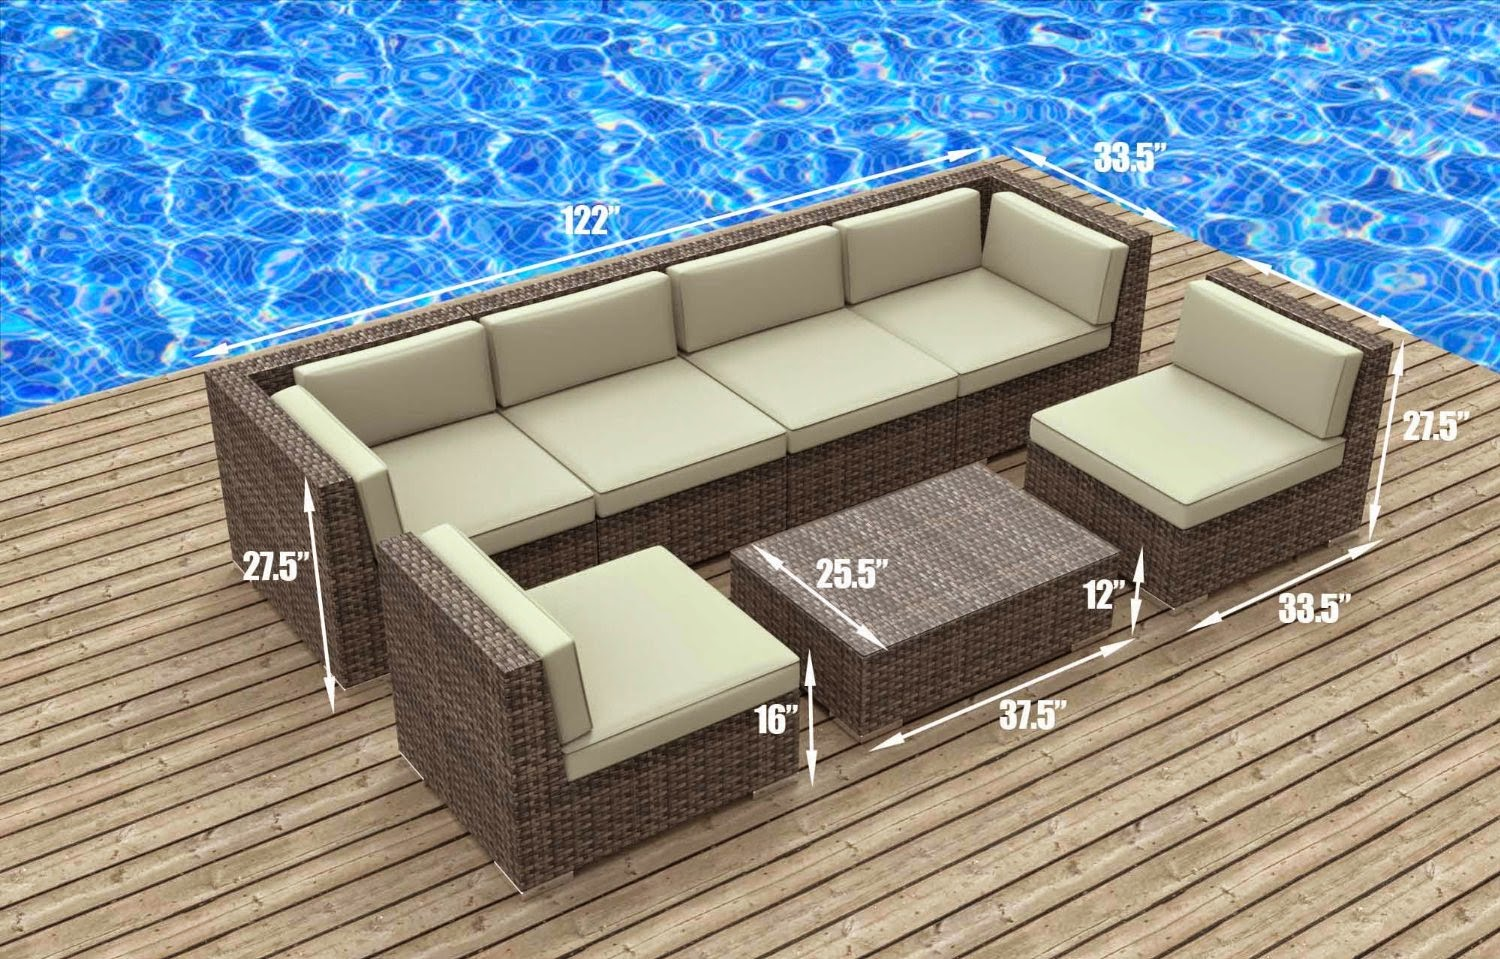 Urban Furnishing Modern Outdoor Backyard Wicker Rattan Patio Furniture Sofa Sectional Couch Set ...